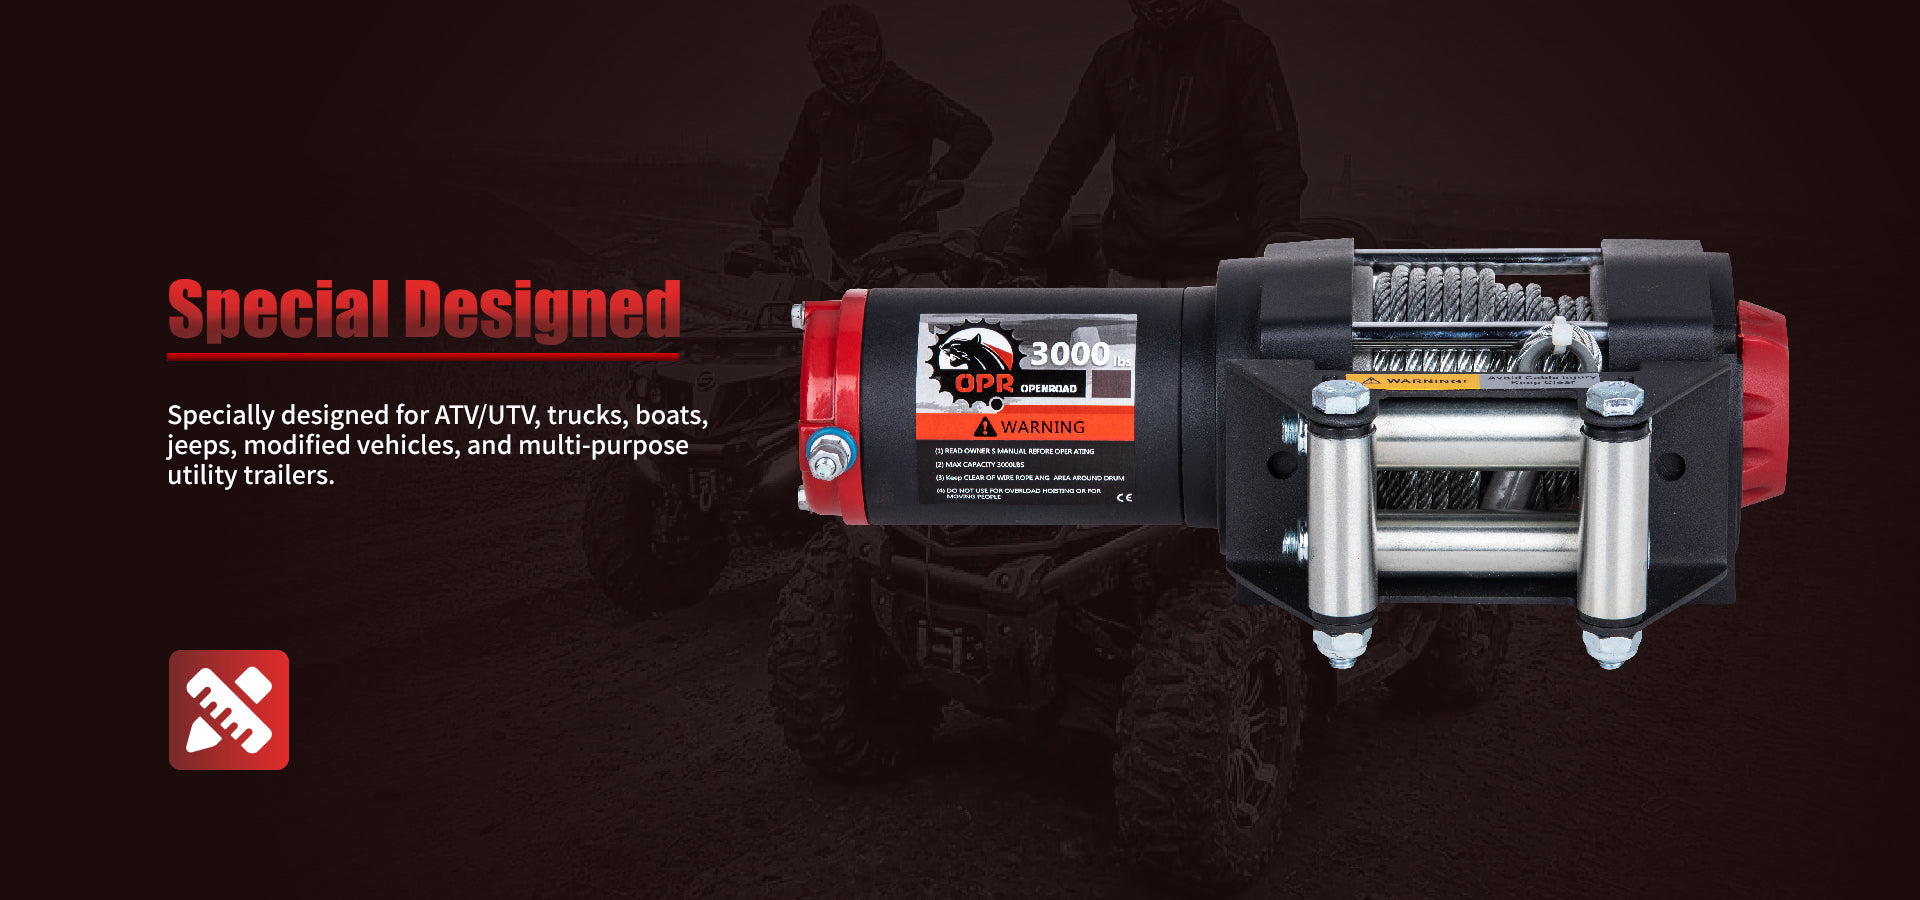 openroad-z-series-3000lb-atv-winch-with-steel-cable